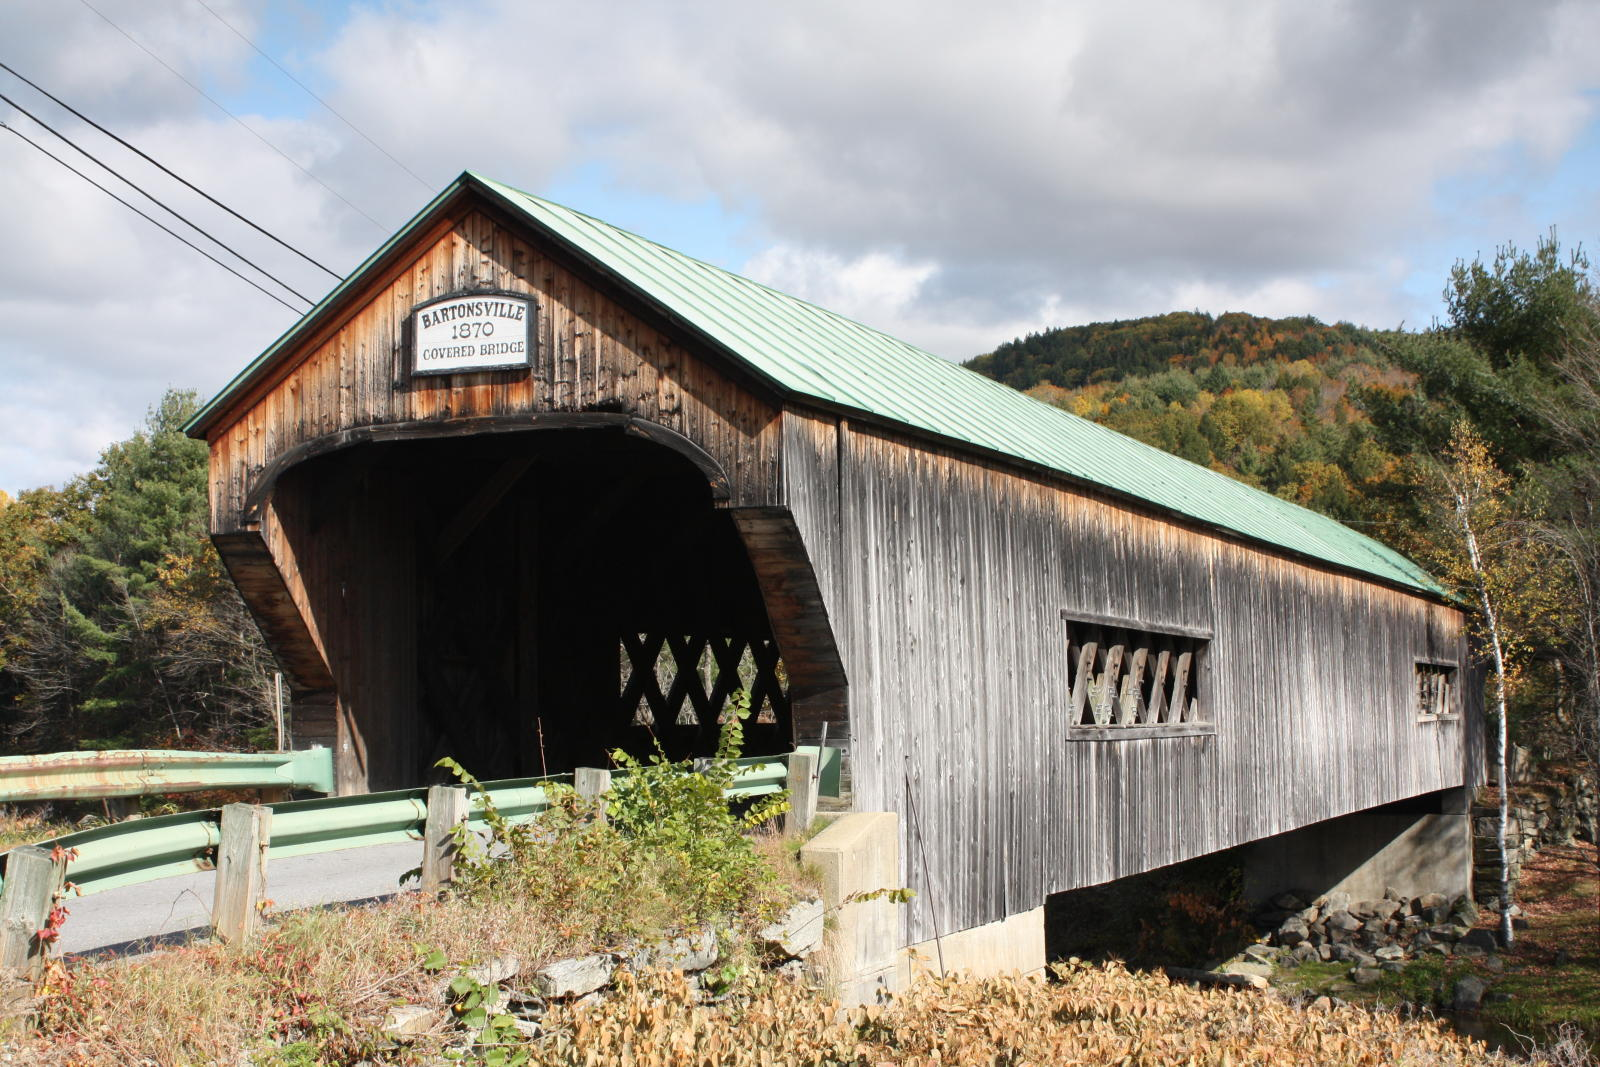 Bridgehunter Com Bartonsville Covered Bridge X